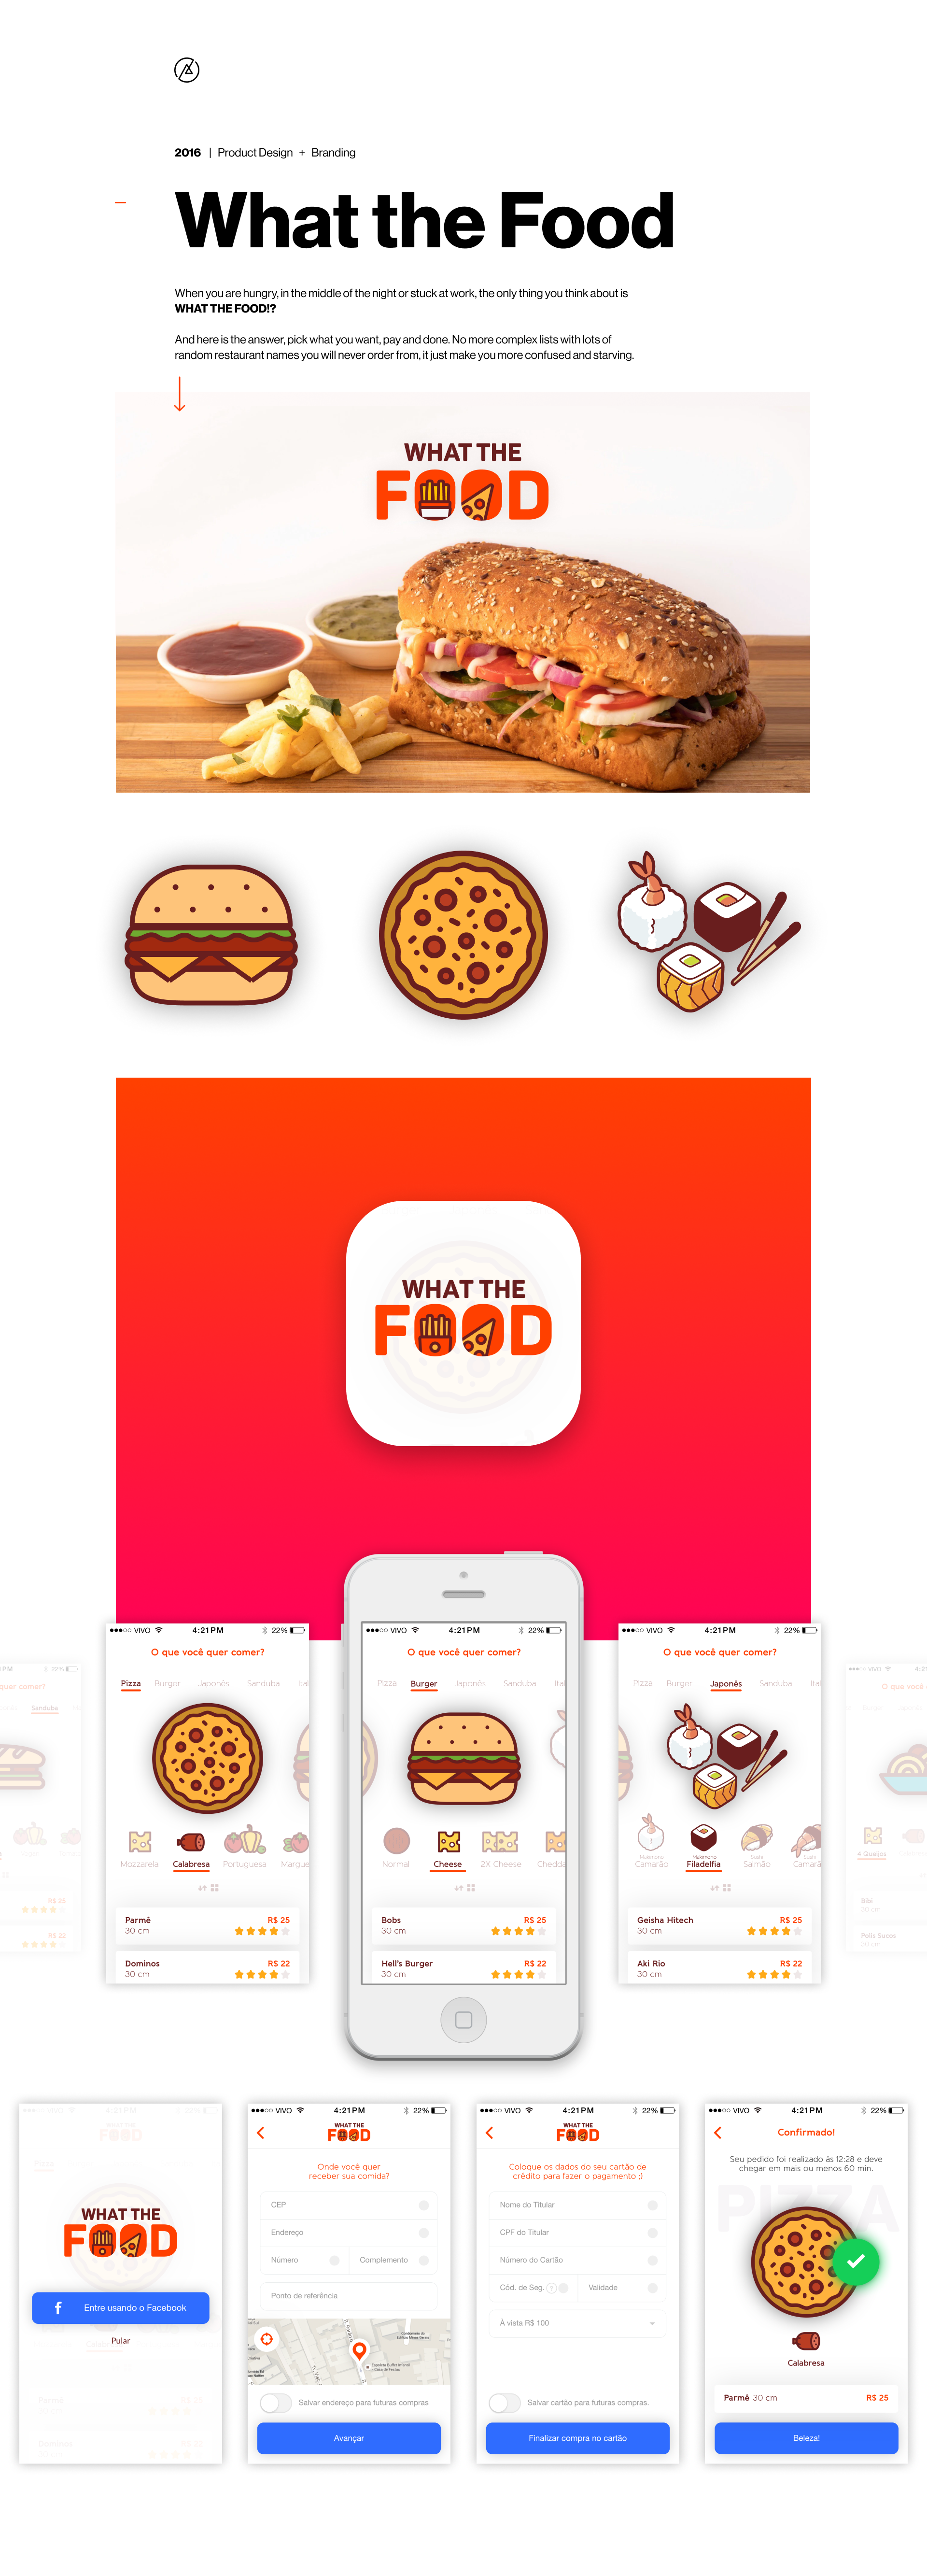 whatthefood-content